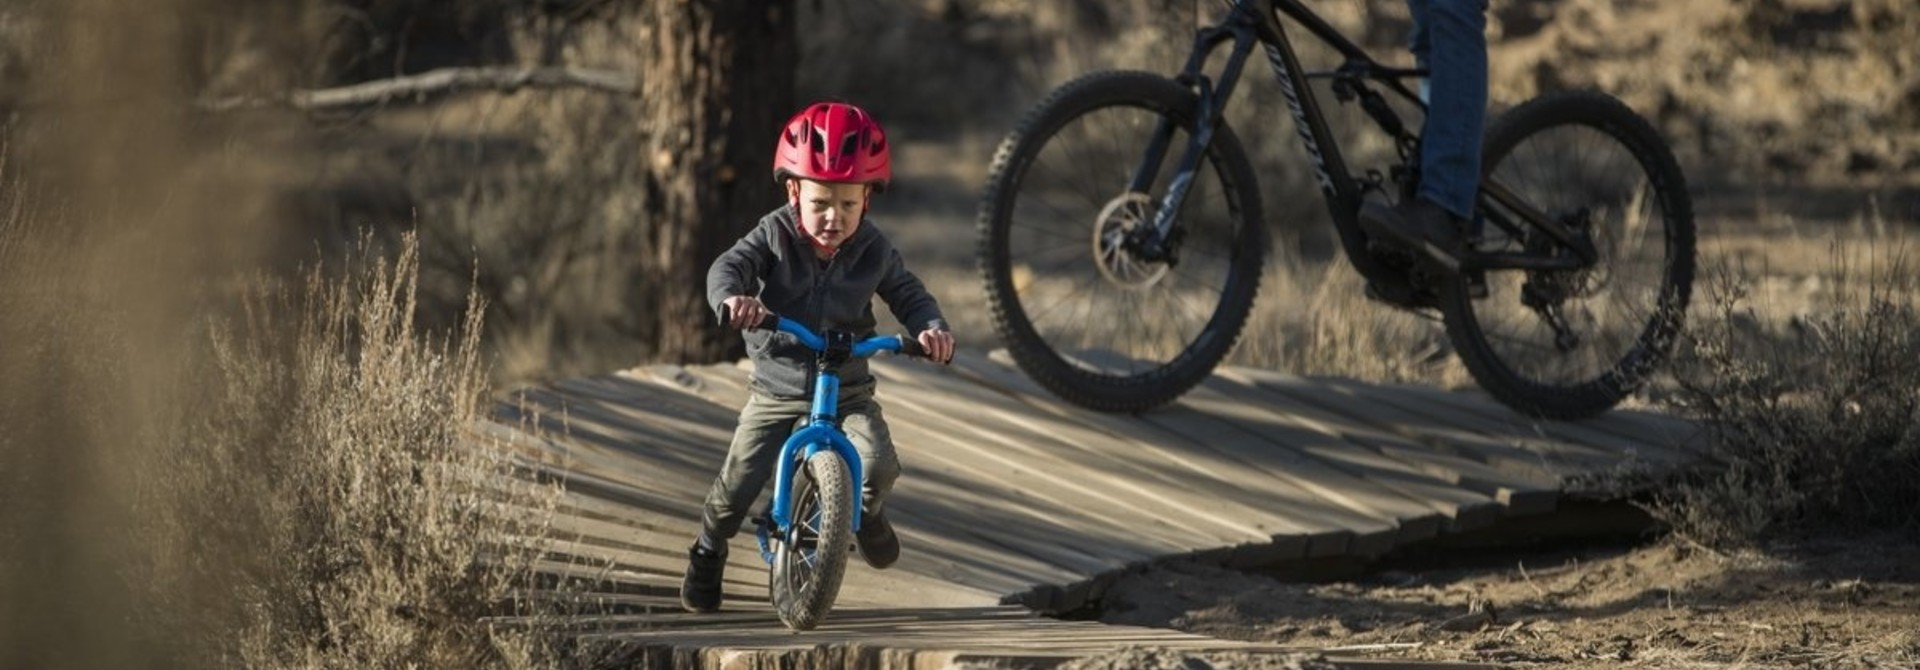 BIKES FOR KIDS FROM 0 - 6 YEARS OLD